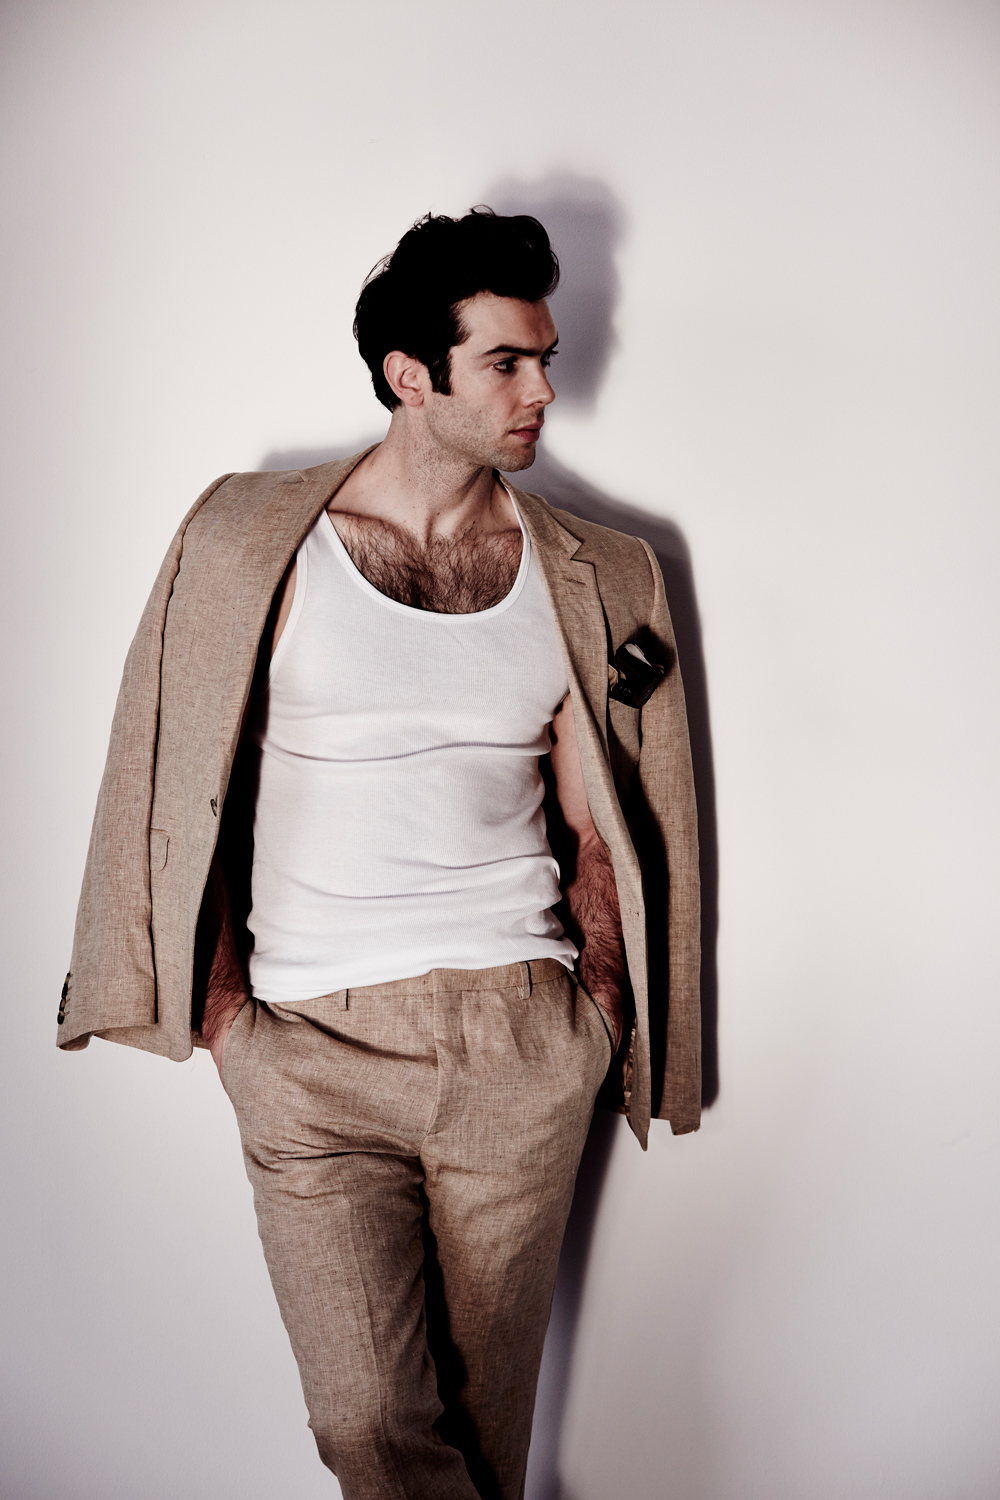 Maxim with Ethan Peck